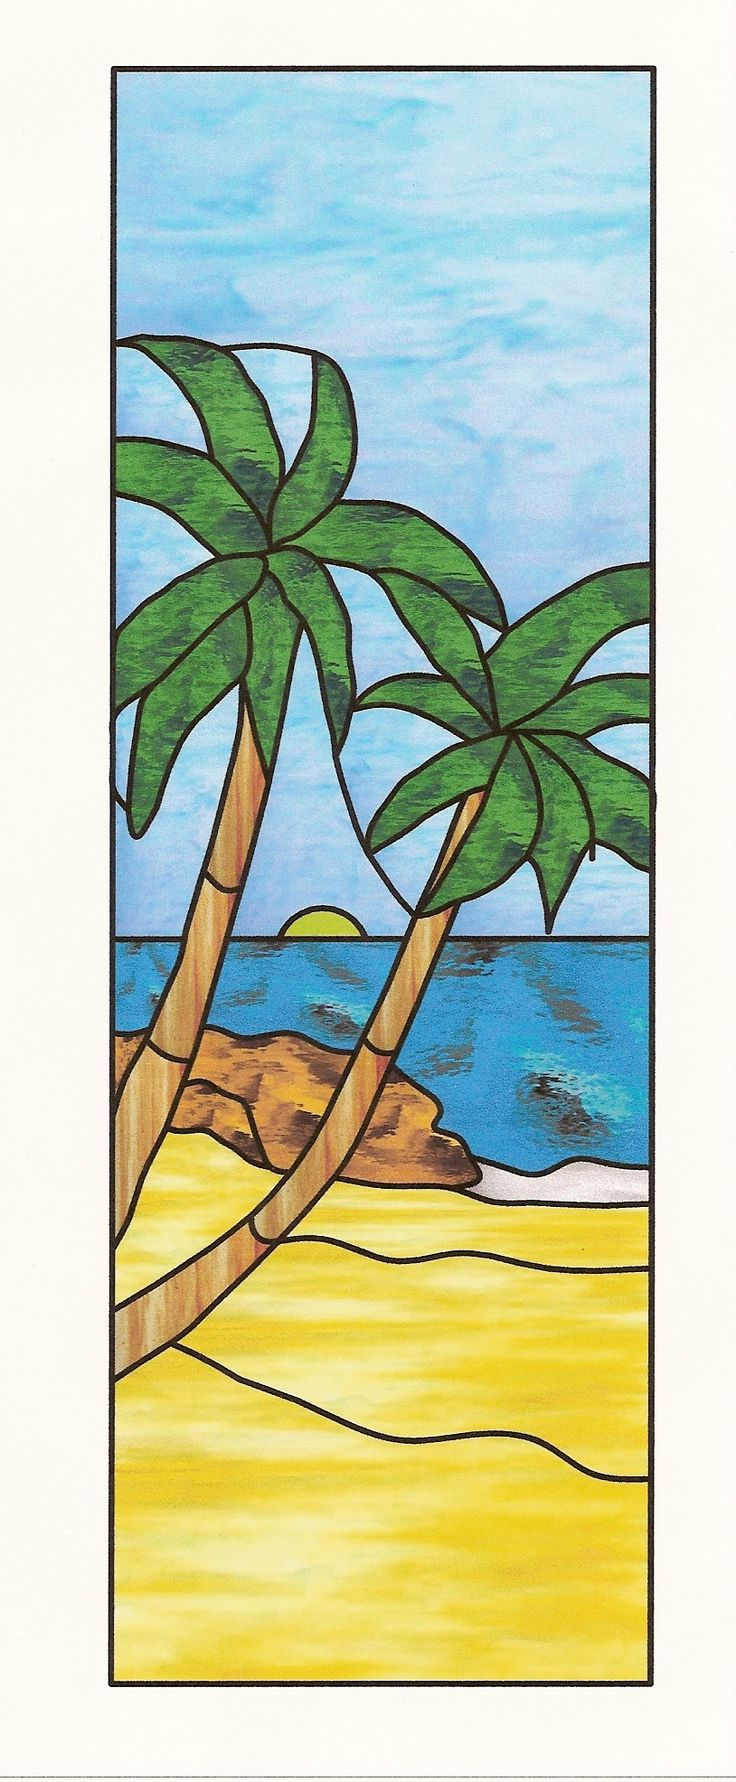 Easy Stained Glass Patterns   Free Scenic Patterns For Stained Glass